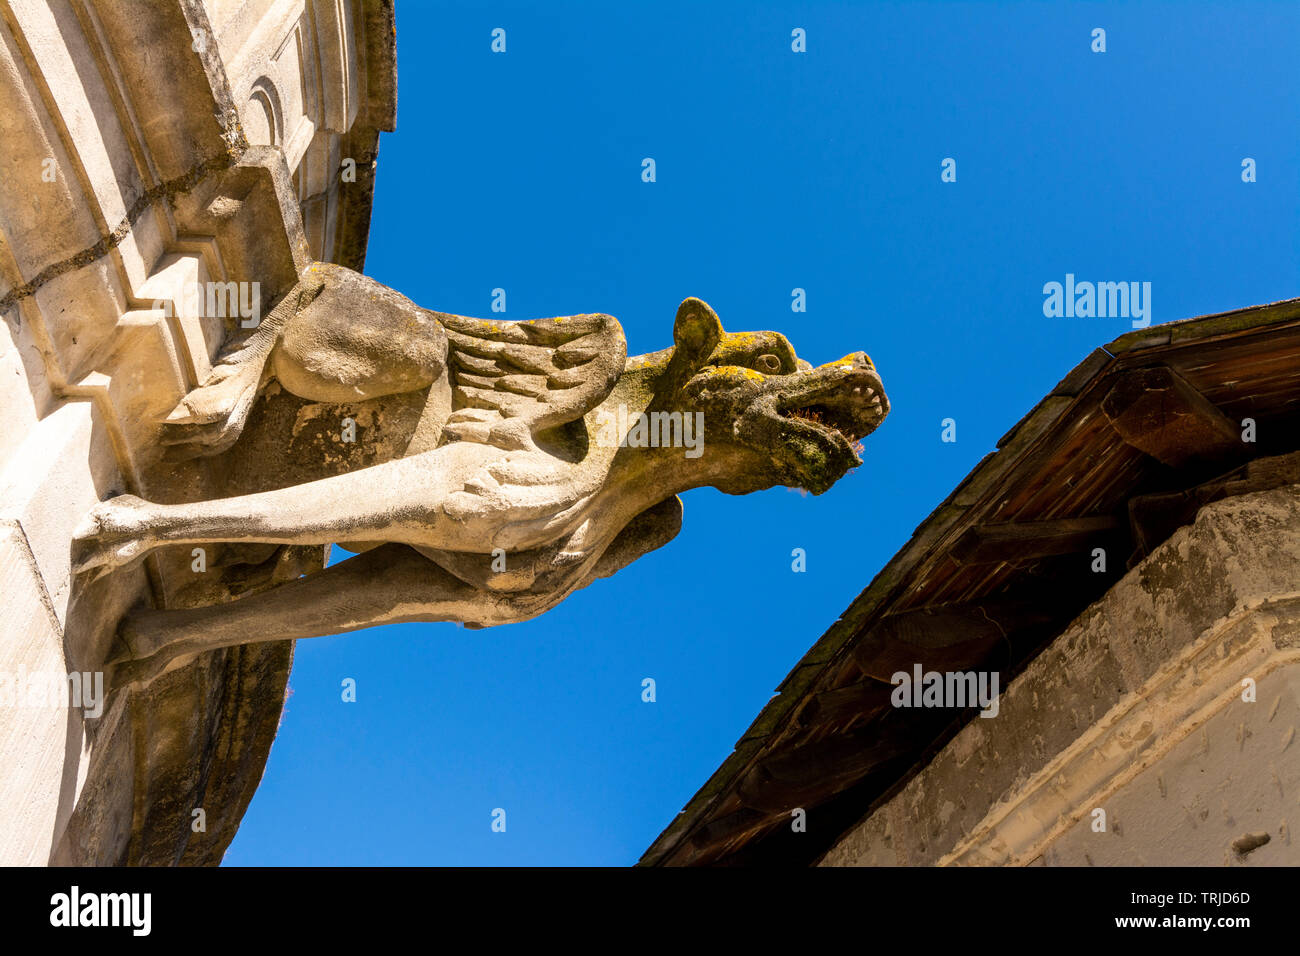 Gargoyle of Cloister of la Psalette near the Saint Gatien´s Cathedral  of Tours city, Indre et Loire, Centre Val de Loire, France - Stock Image